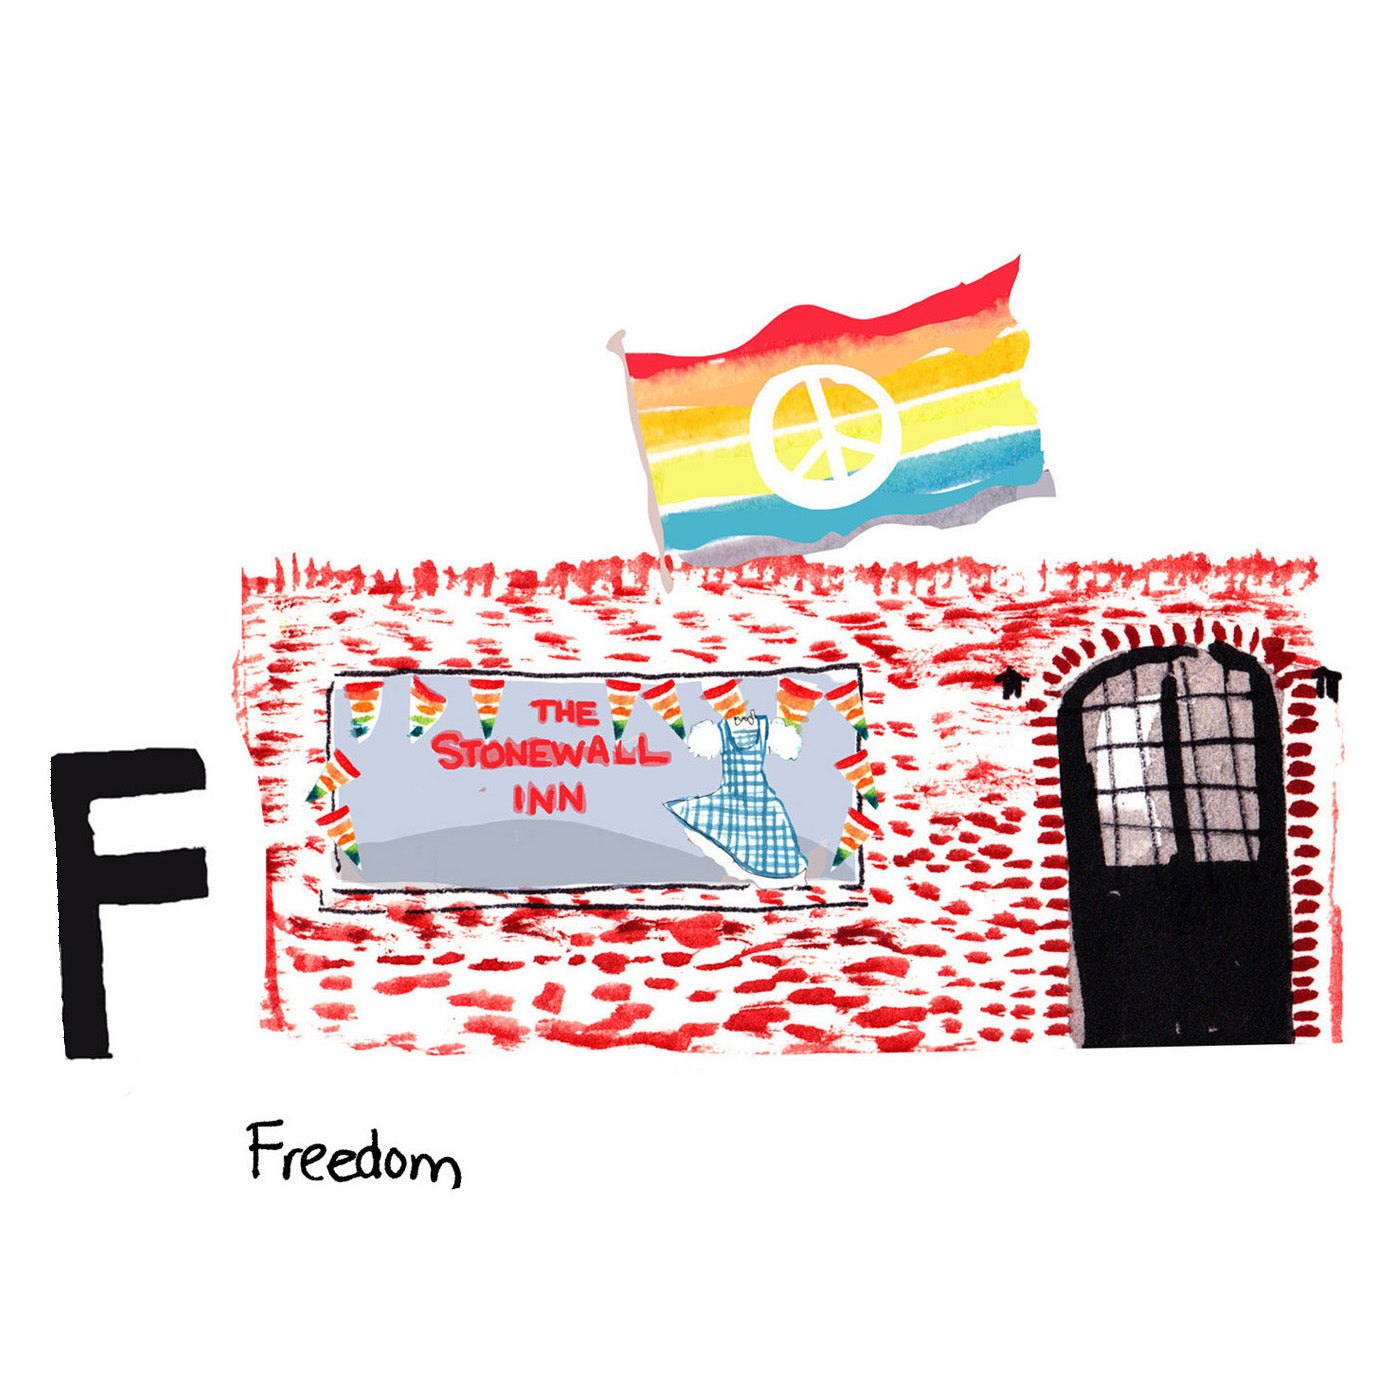 F is for Freedom. In 1969 the gay rights movement launched with the Stonewalll Riots, a series of violent demonstrations between the LGBT community and the Greenwich Village police. The Stonewall Inn is a LGBT friendly bar and has been declared a National Historic Landmark.